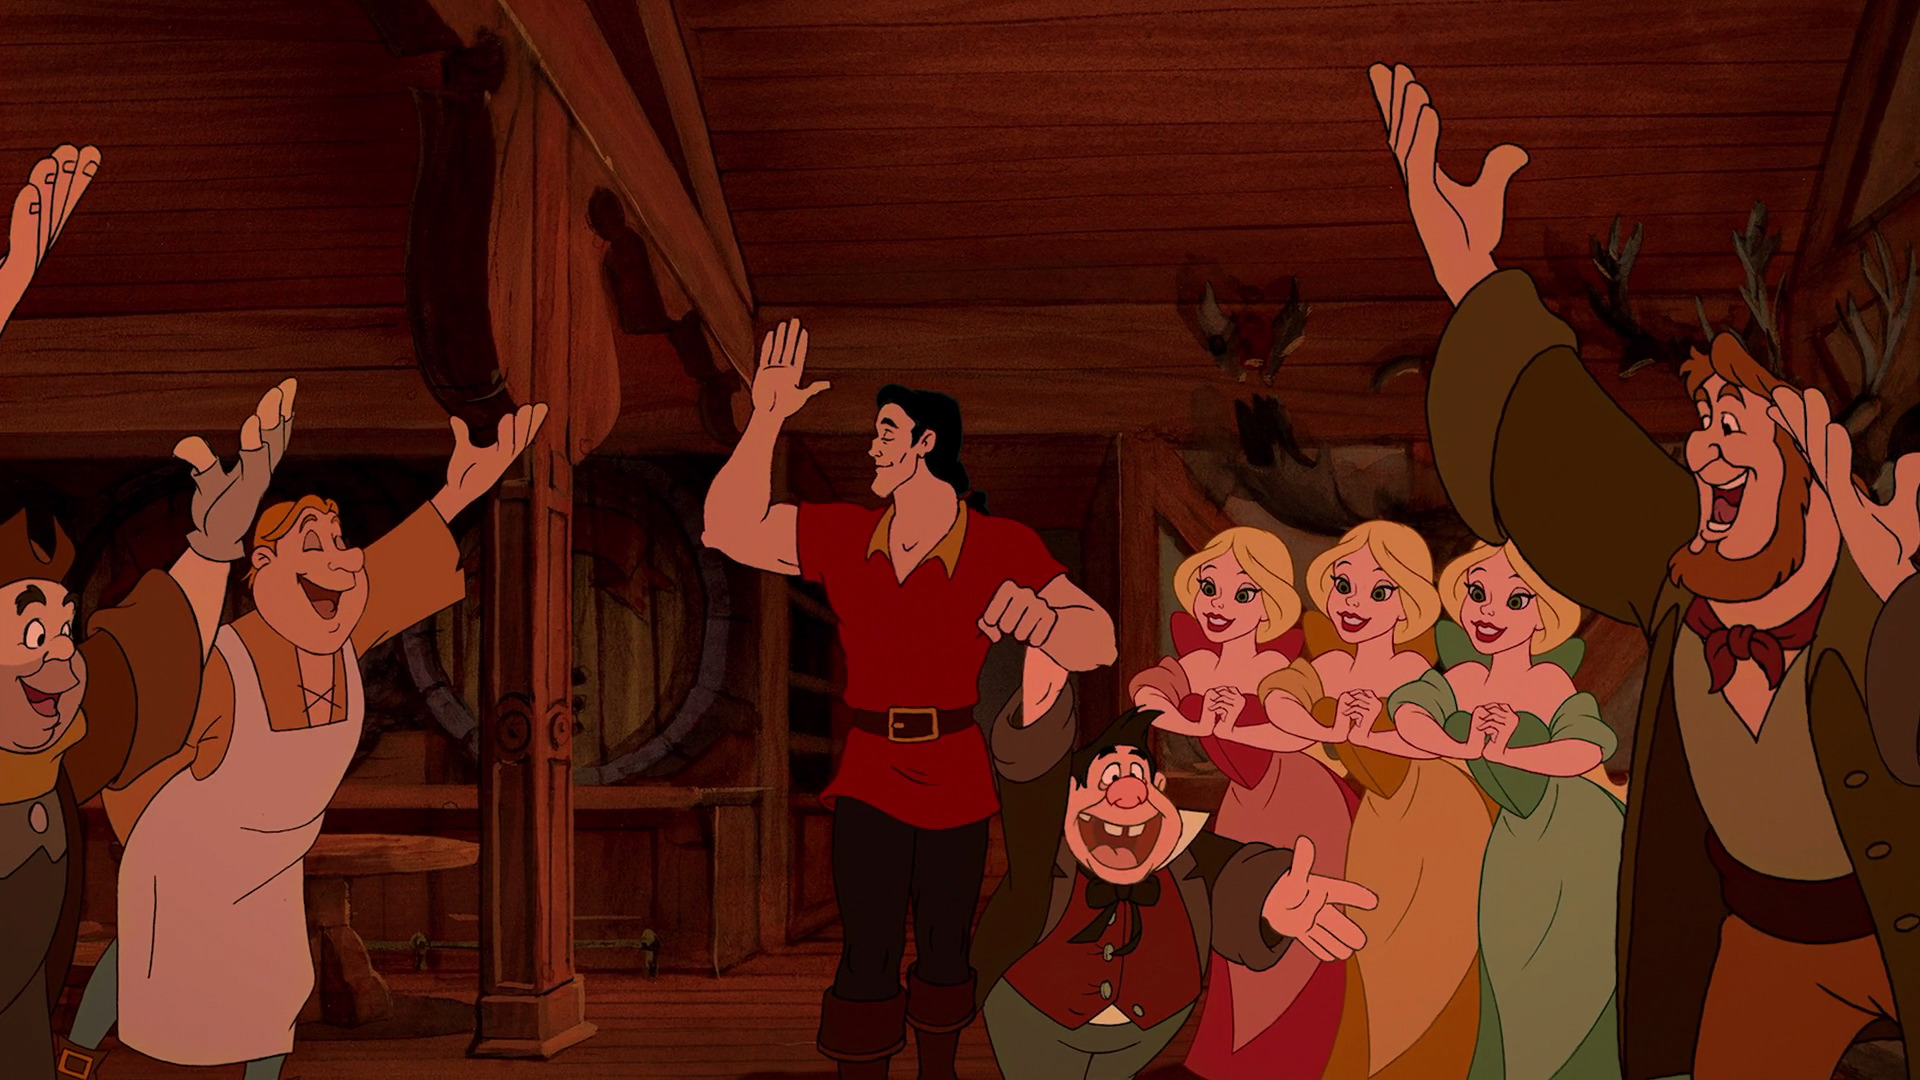 Ratigan6688/How I Rank The Beauty And The Beast Songs